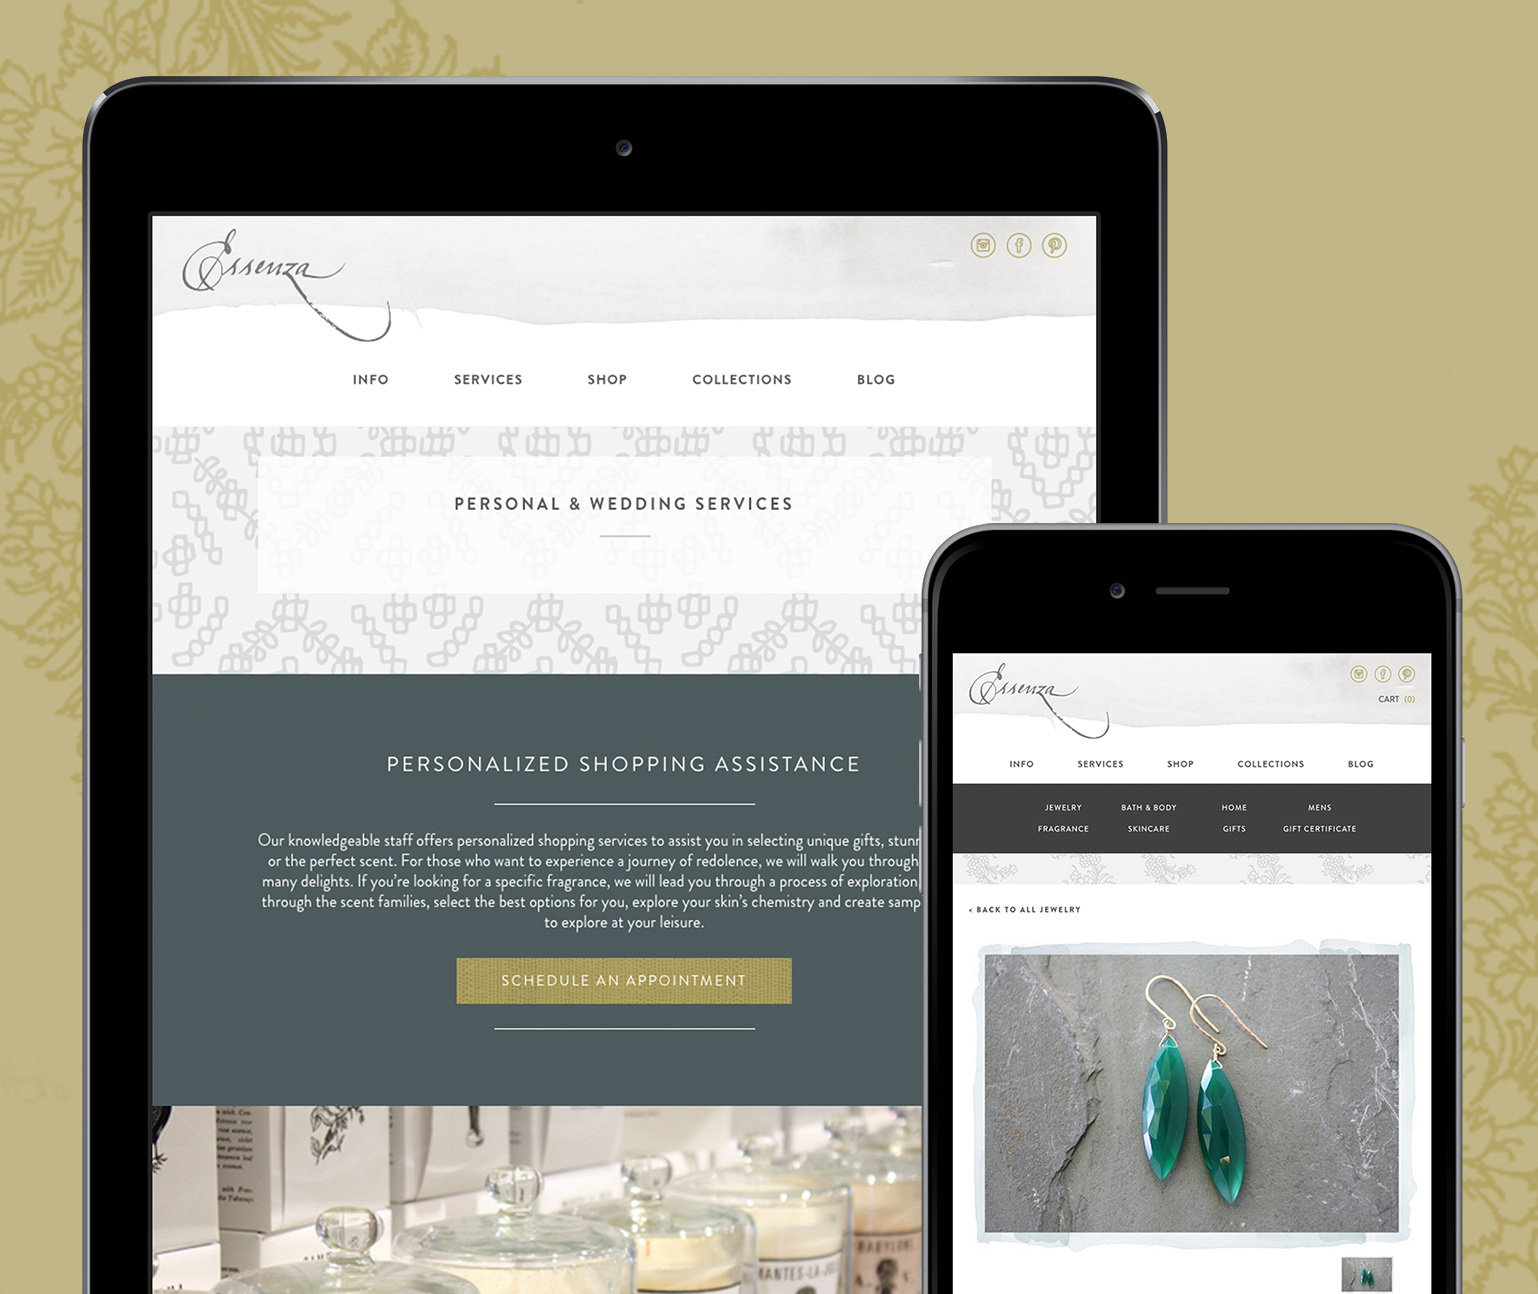 Essenza ecommerce website shown in a tablet and mobile phone